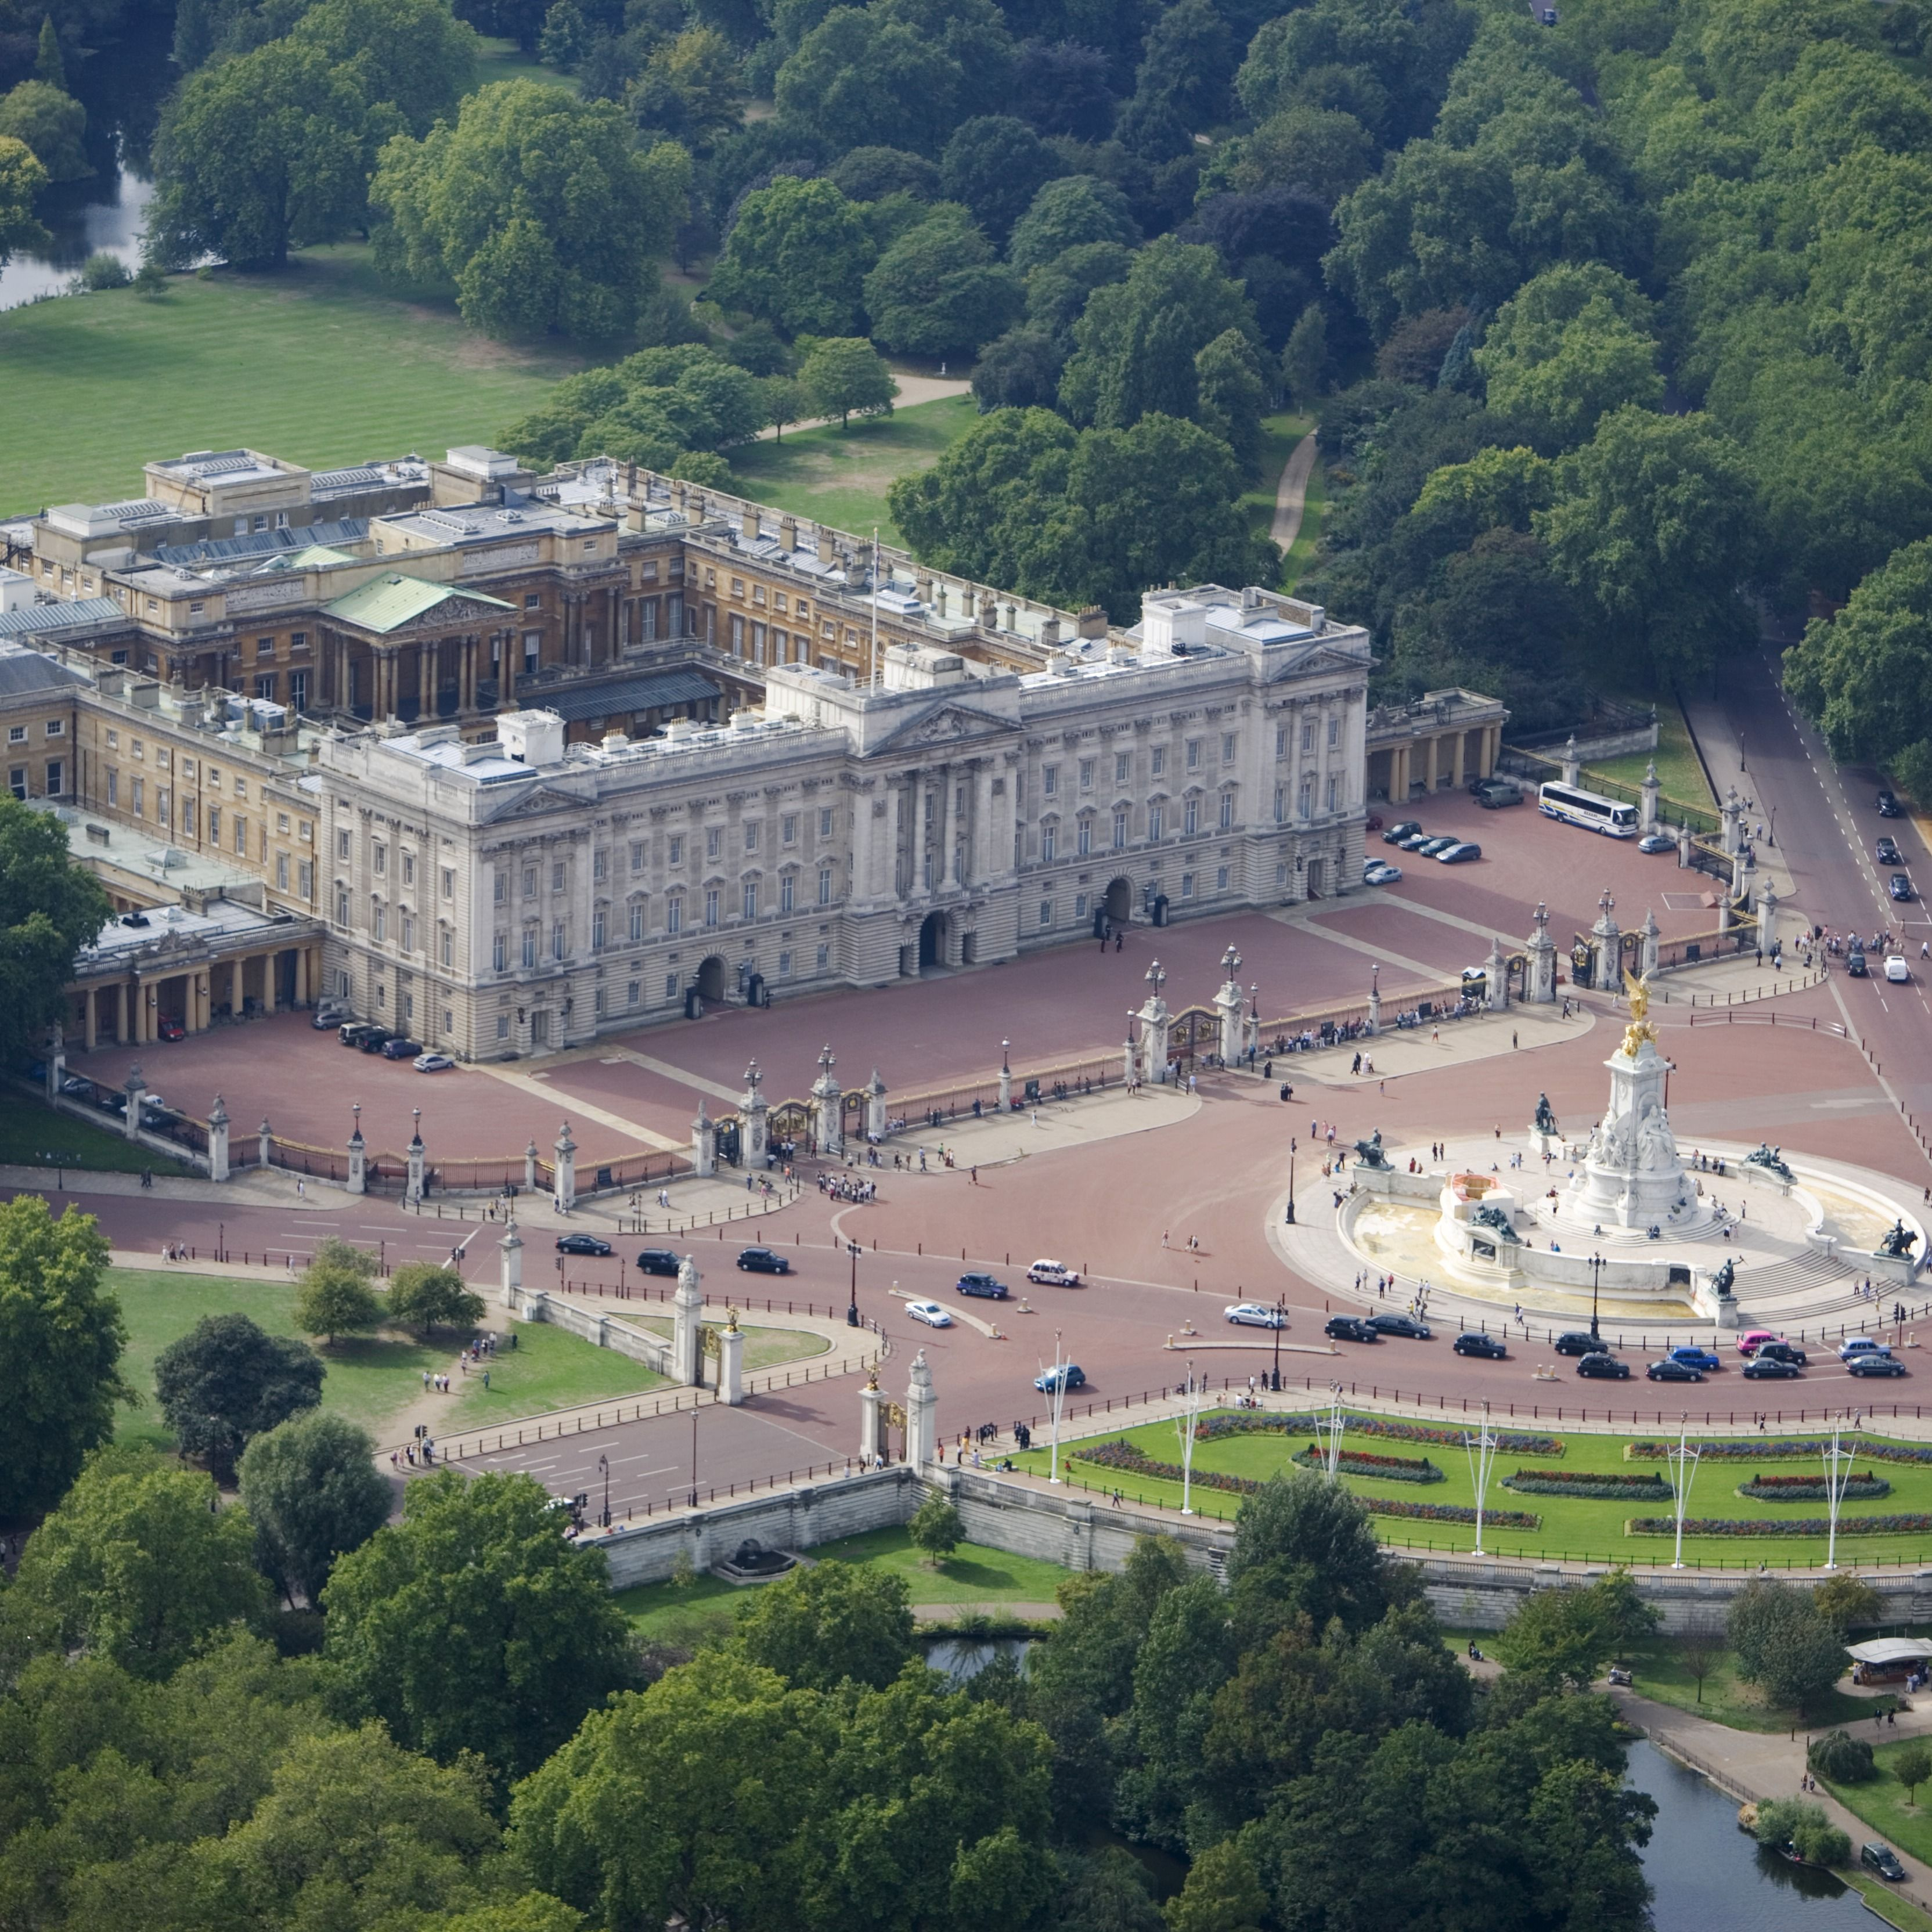 It Would Cost Over $3 Million to Rent Buckingham Palace for a Month, According to Study